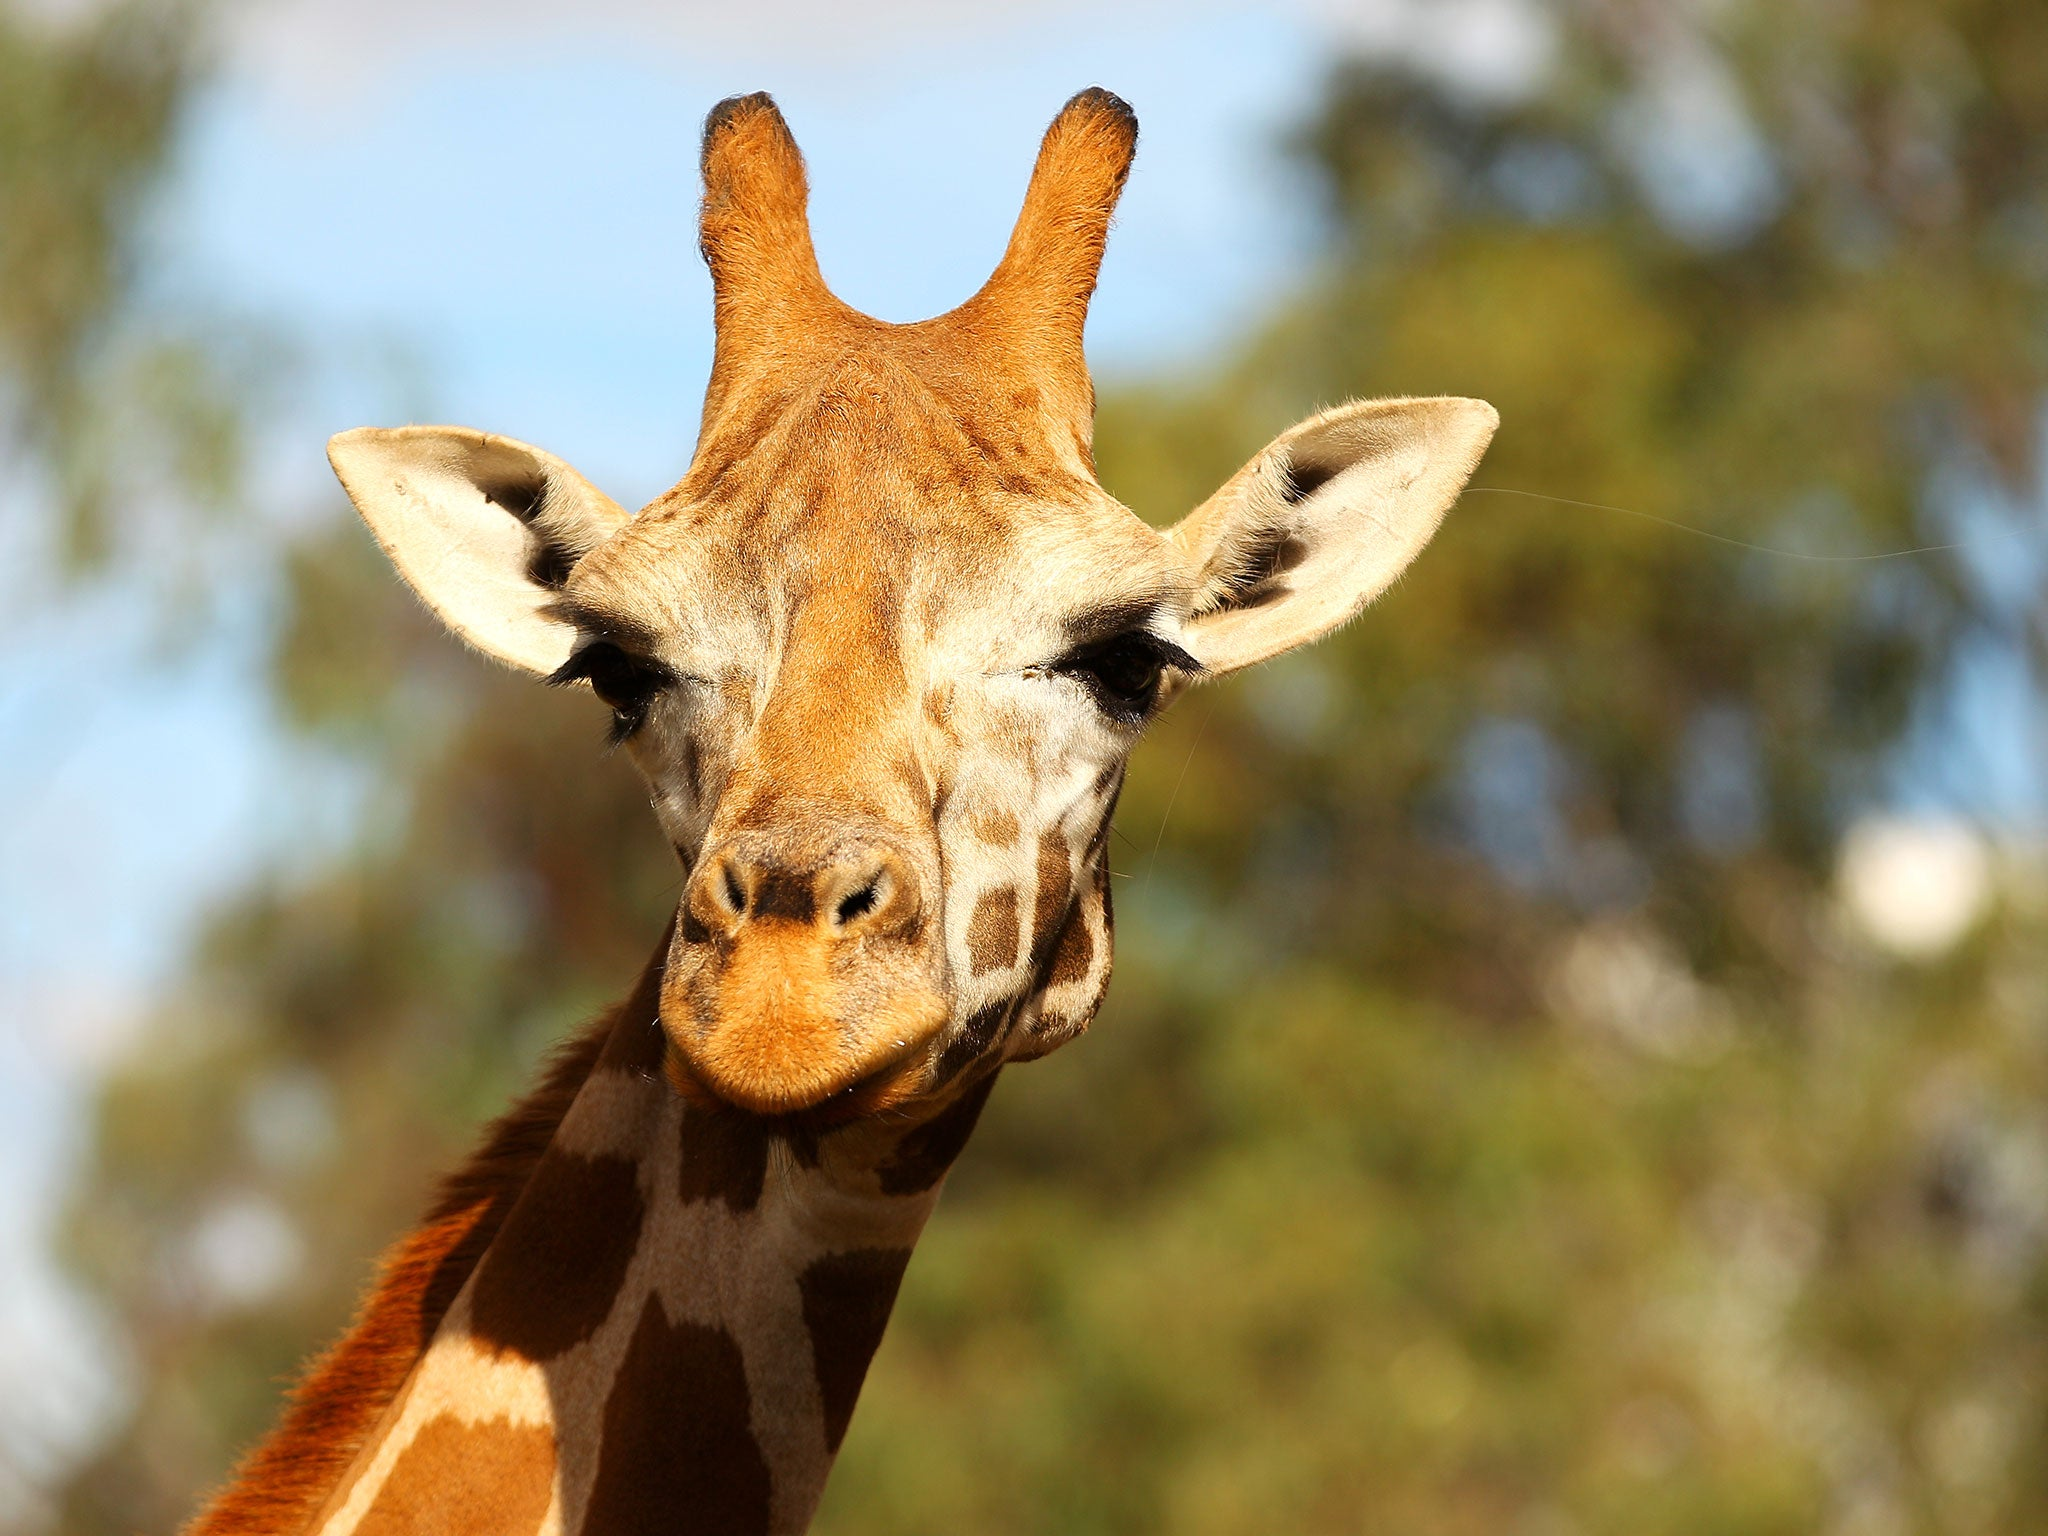 giraffes are divided into four distinct species not just one